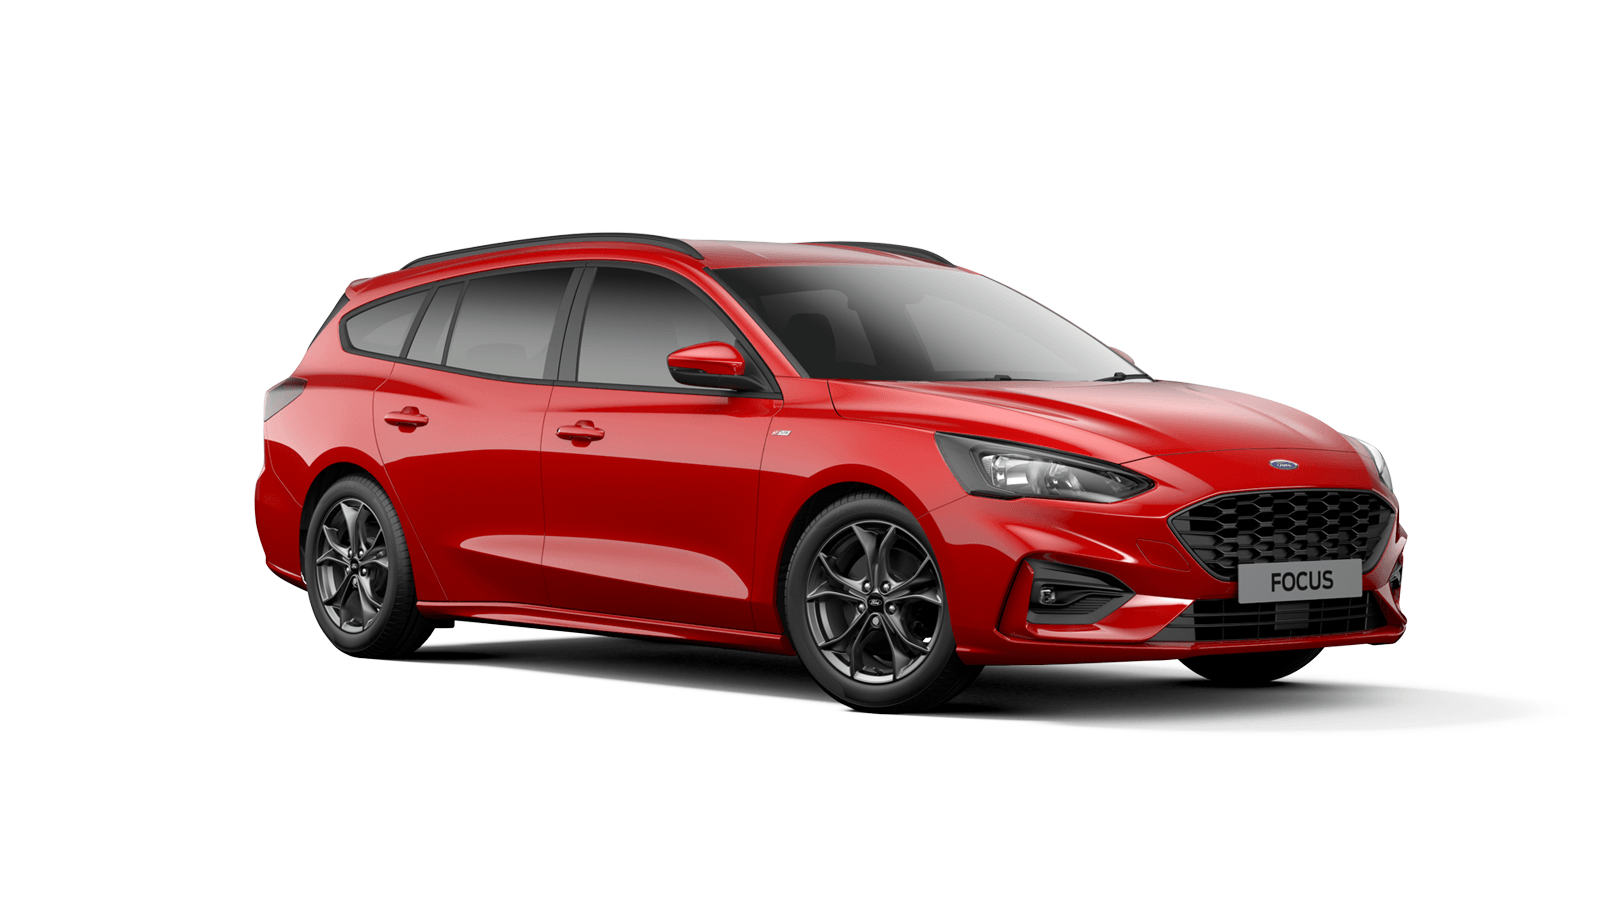 All-New Ford Focus at RGR Garages